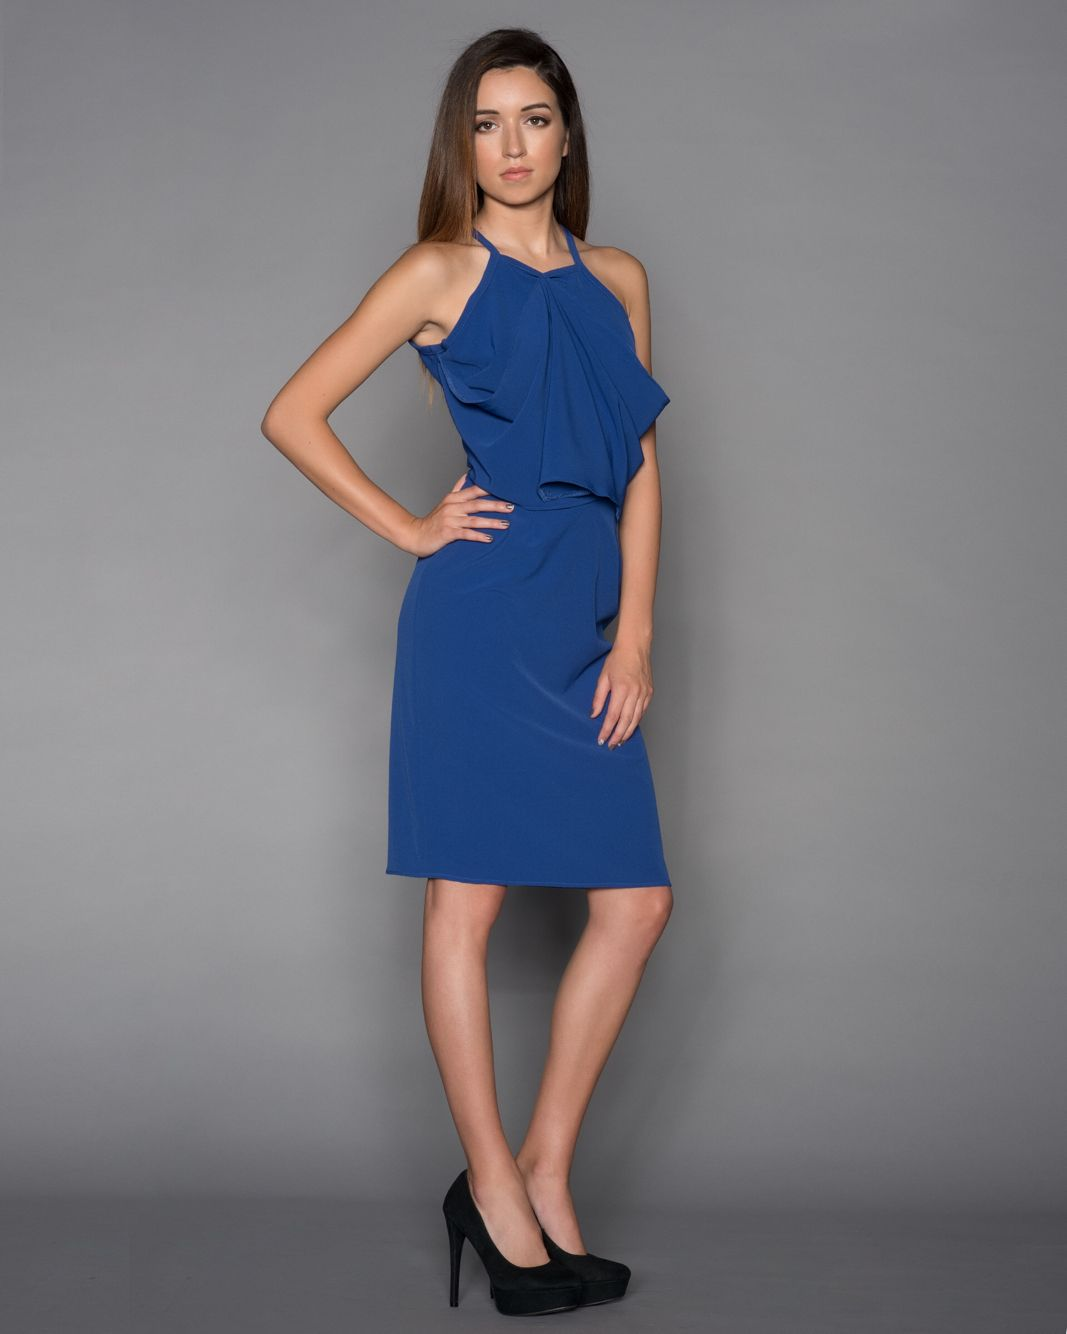 Diamond Midi-Dress  Available in sizes: S-XL In colors: Royal/Black/Taupe/White